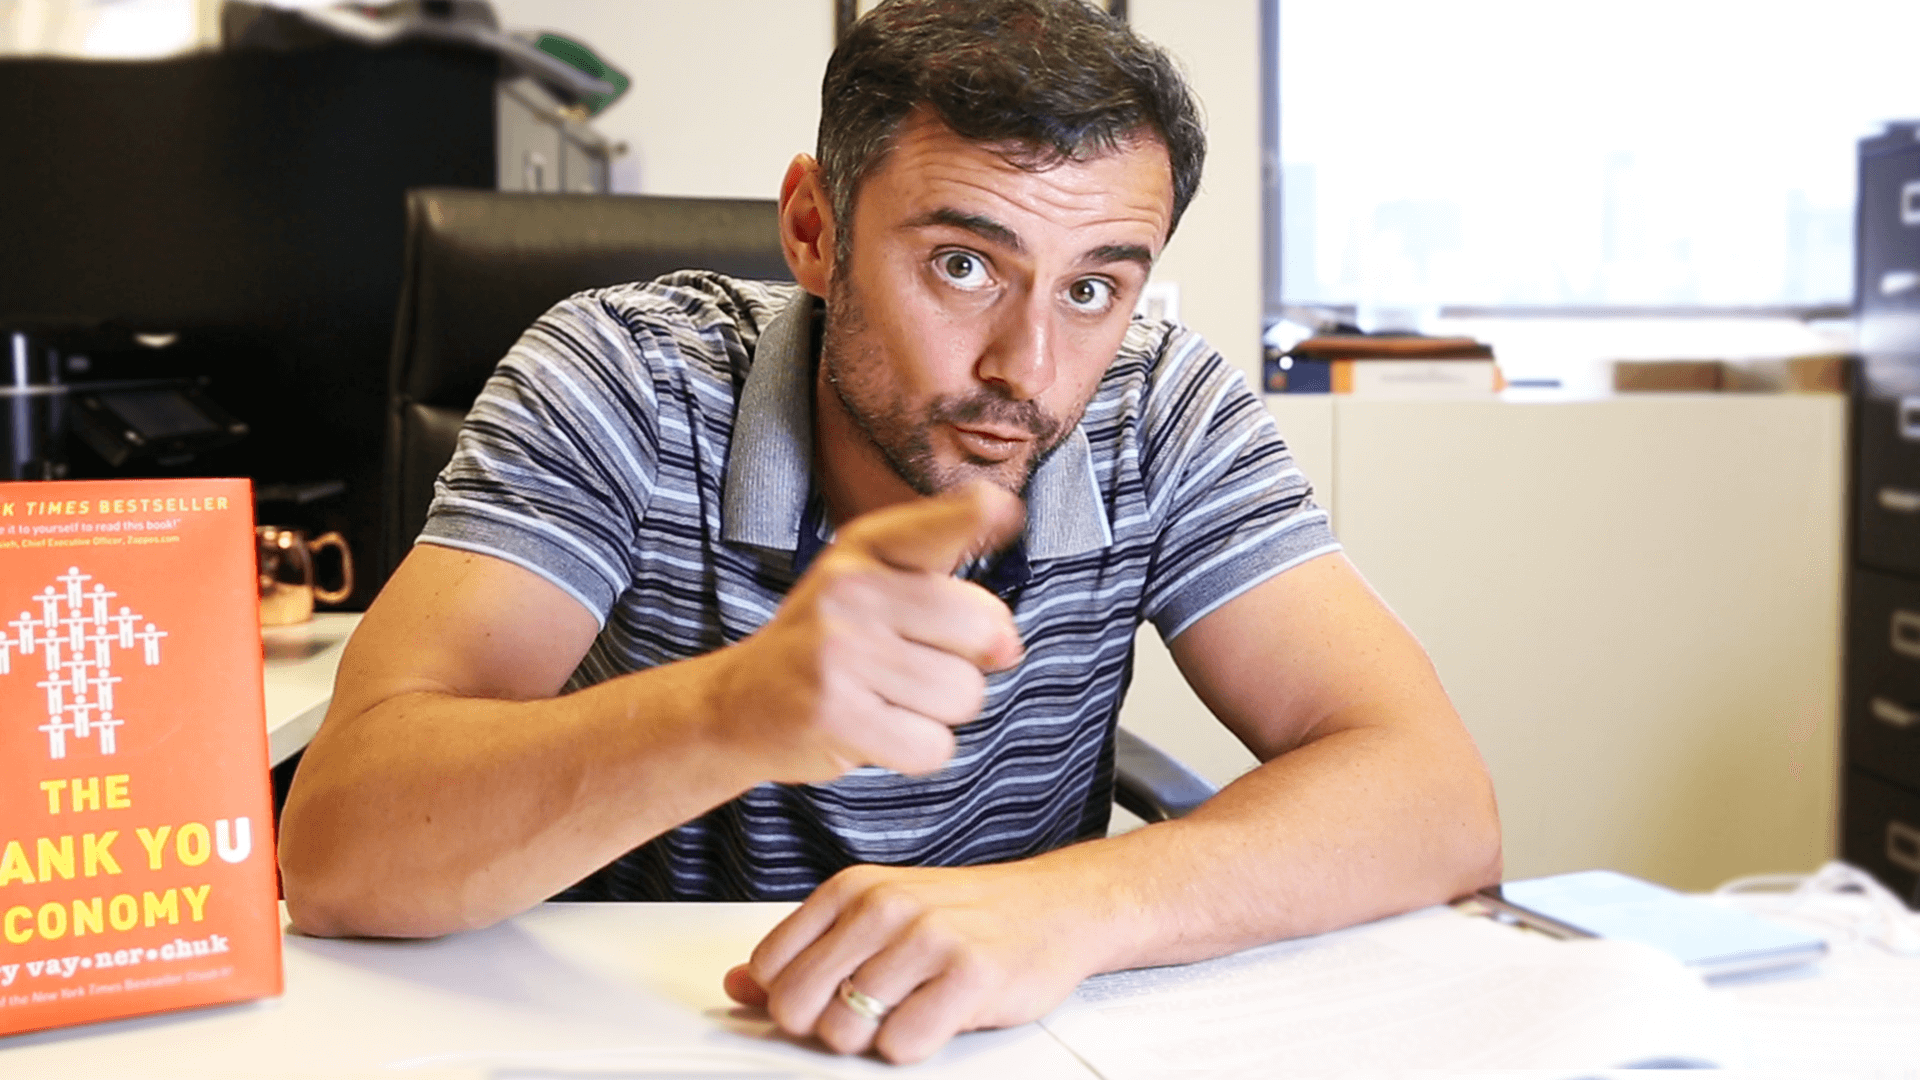 Gary Vaynerchuk with Thank You Economy